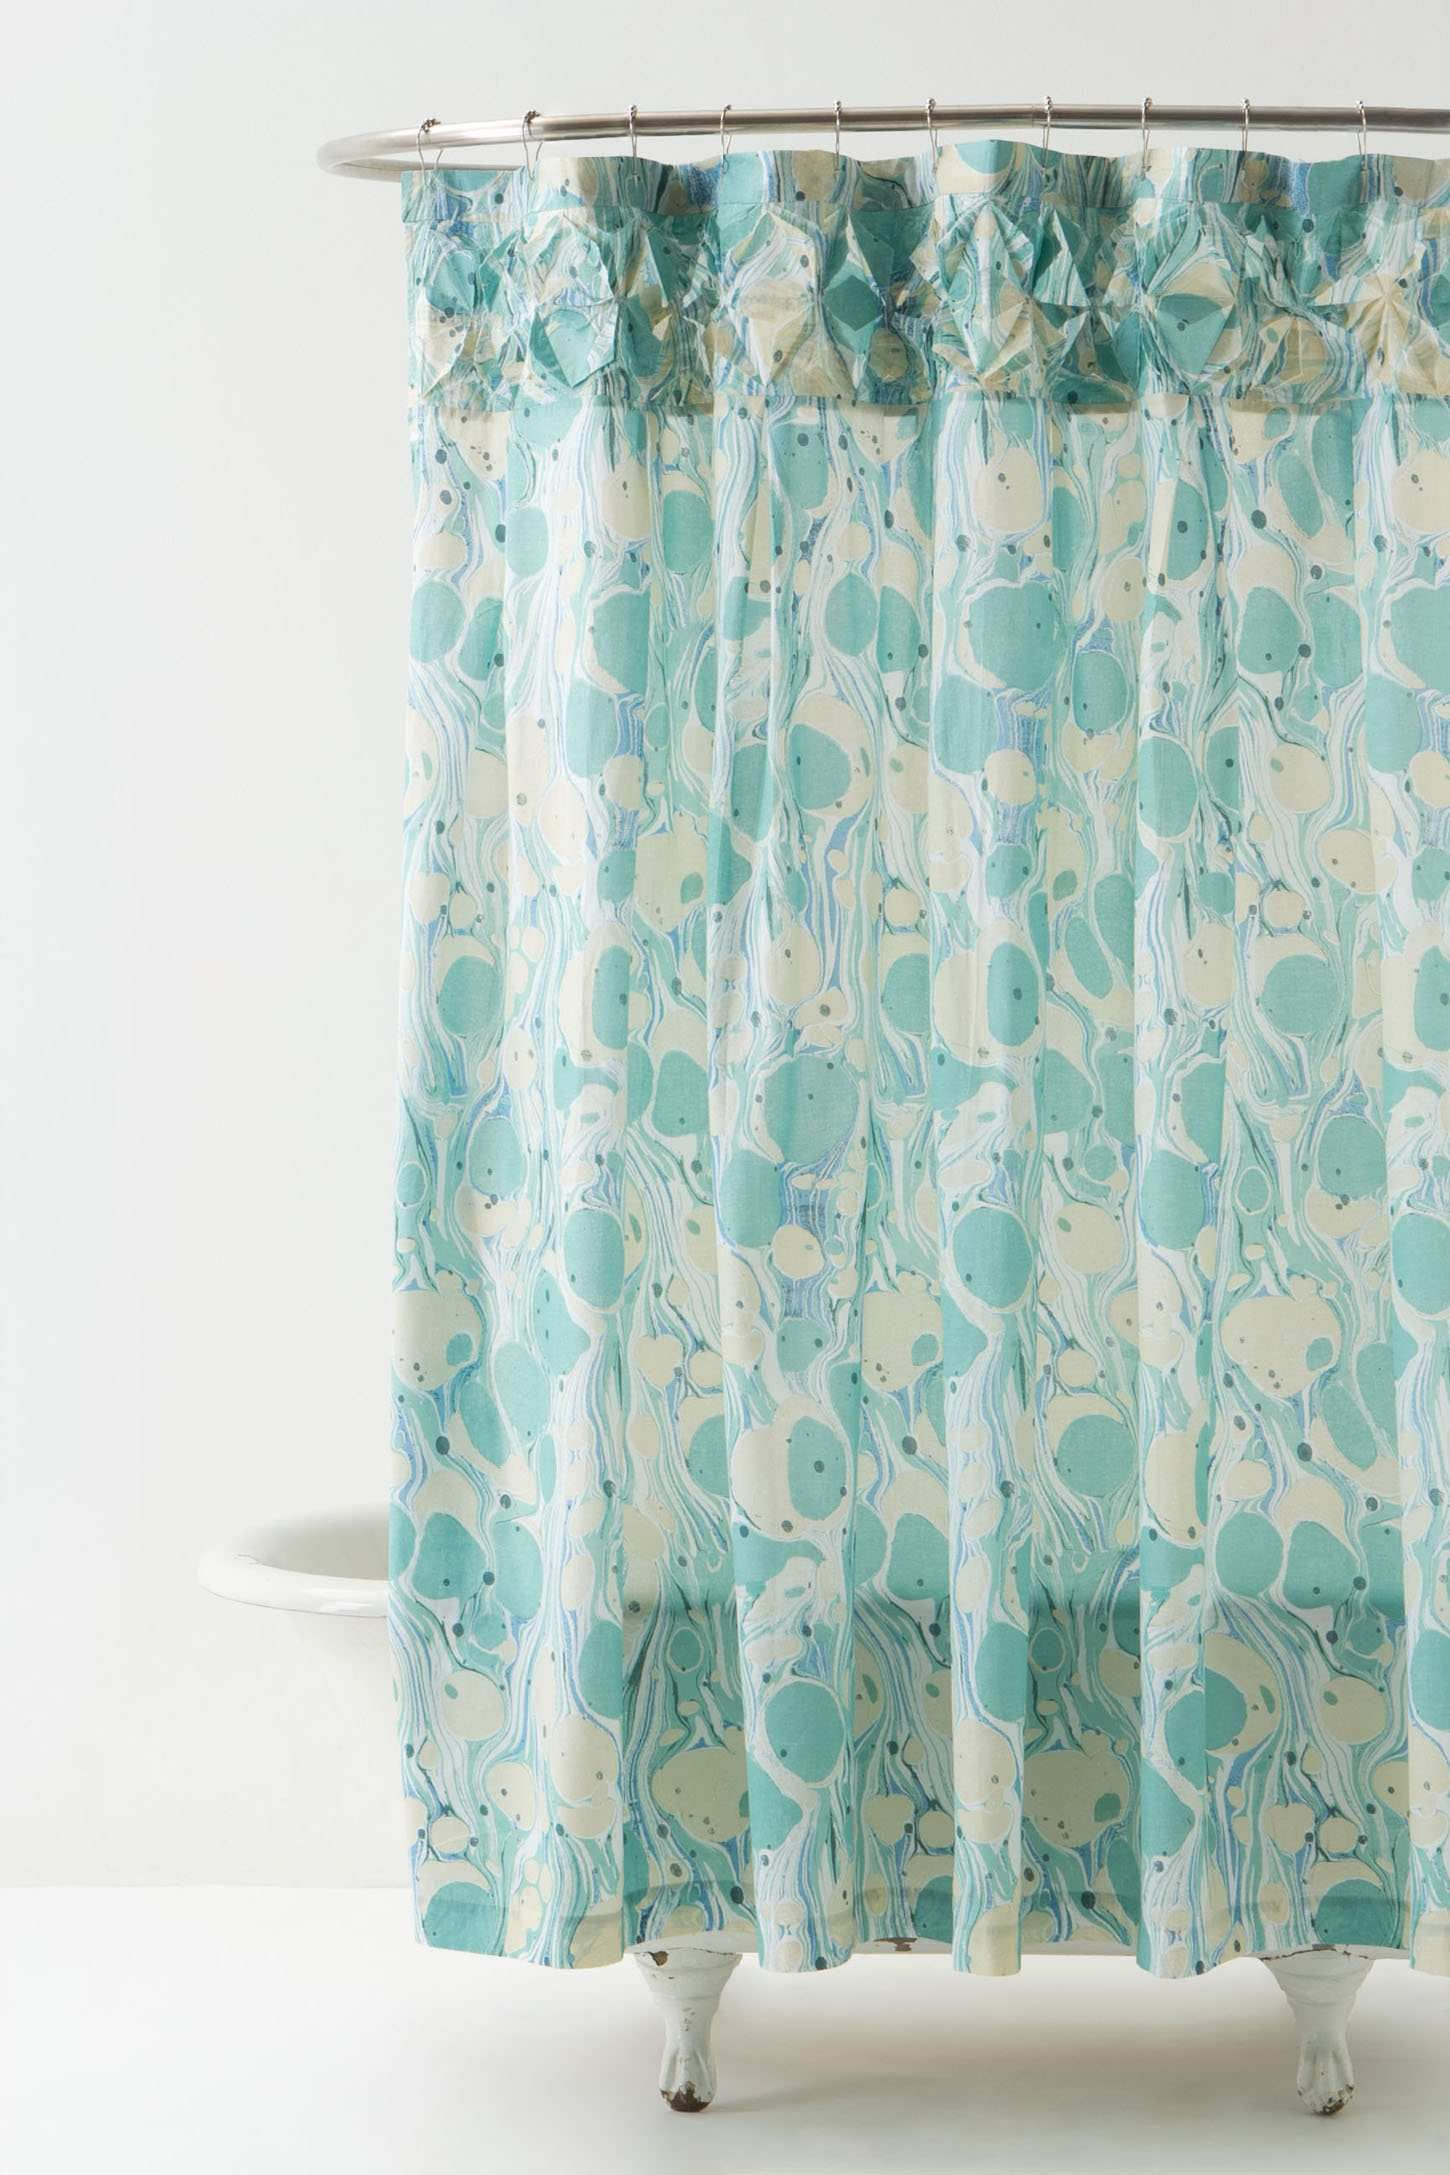 Choosing The Best Shower Curtain Check It Out  Shower Screen Simple Elegant Bathroom Shower Curtains Design Inspiration